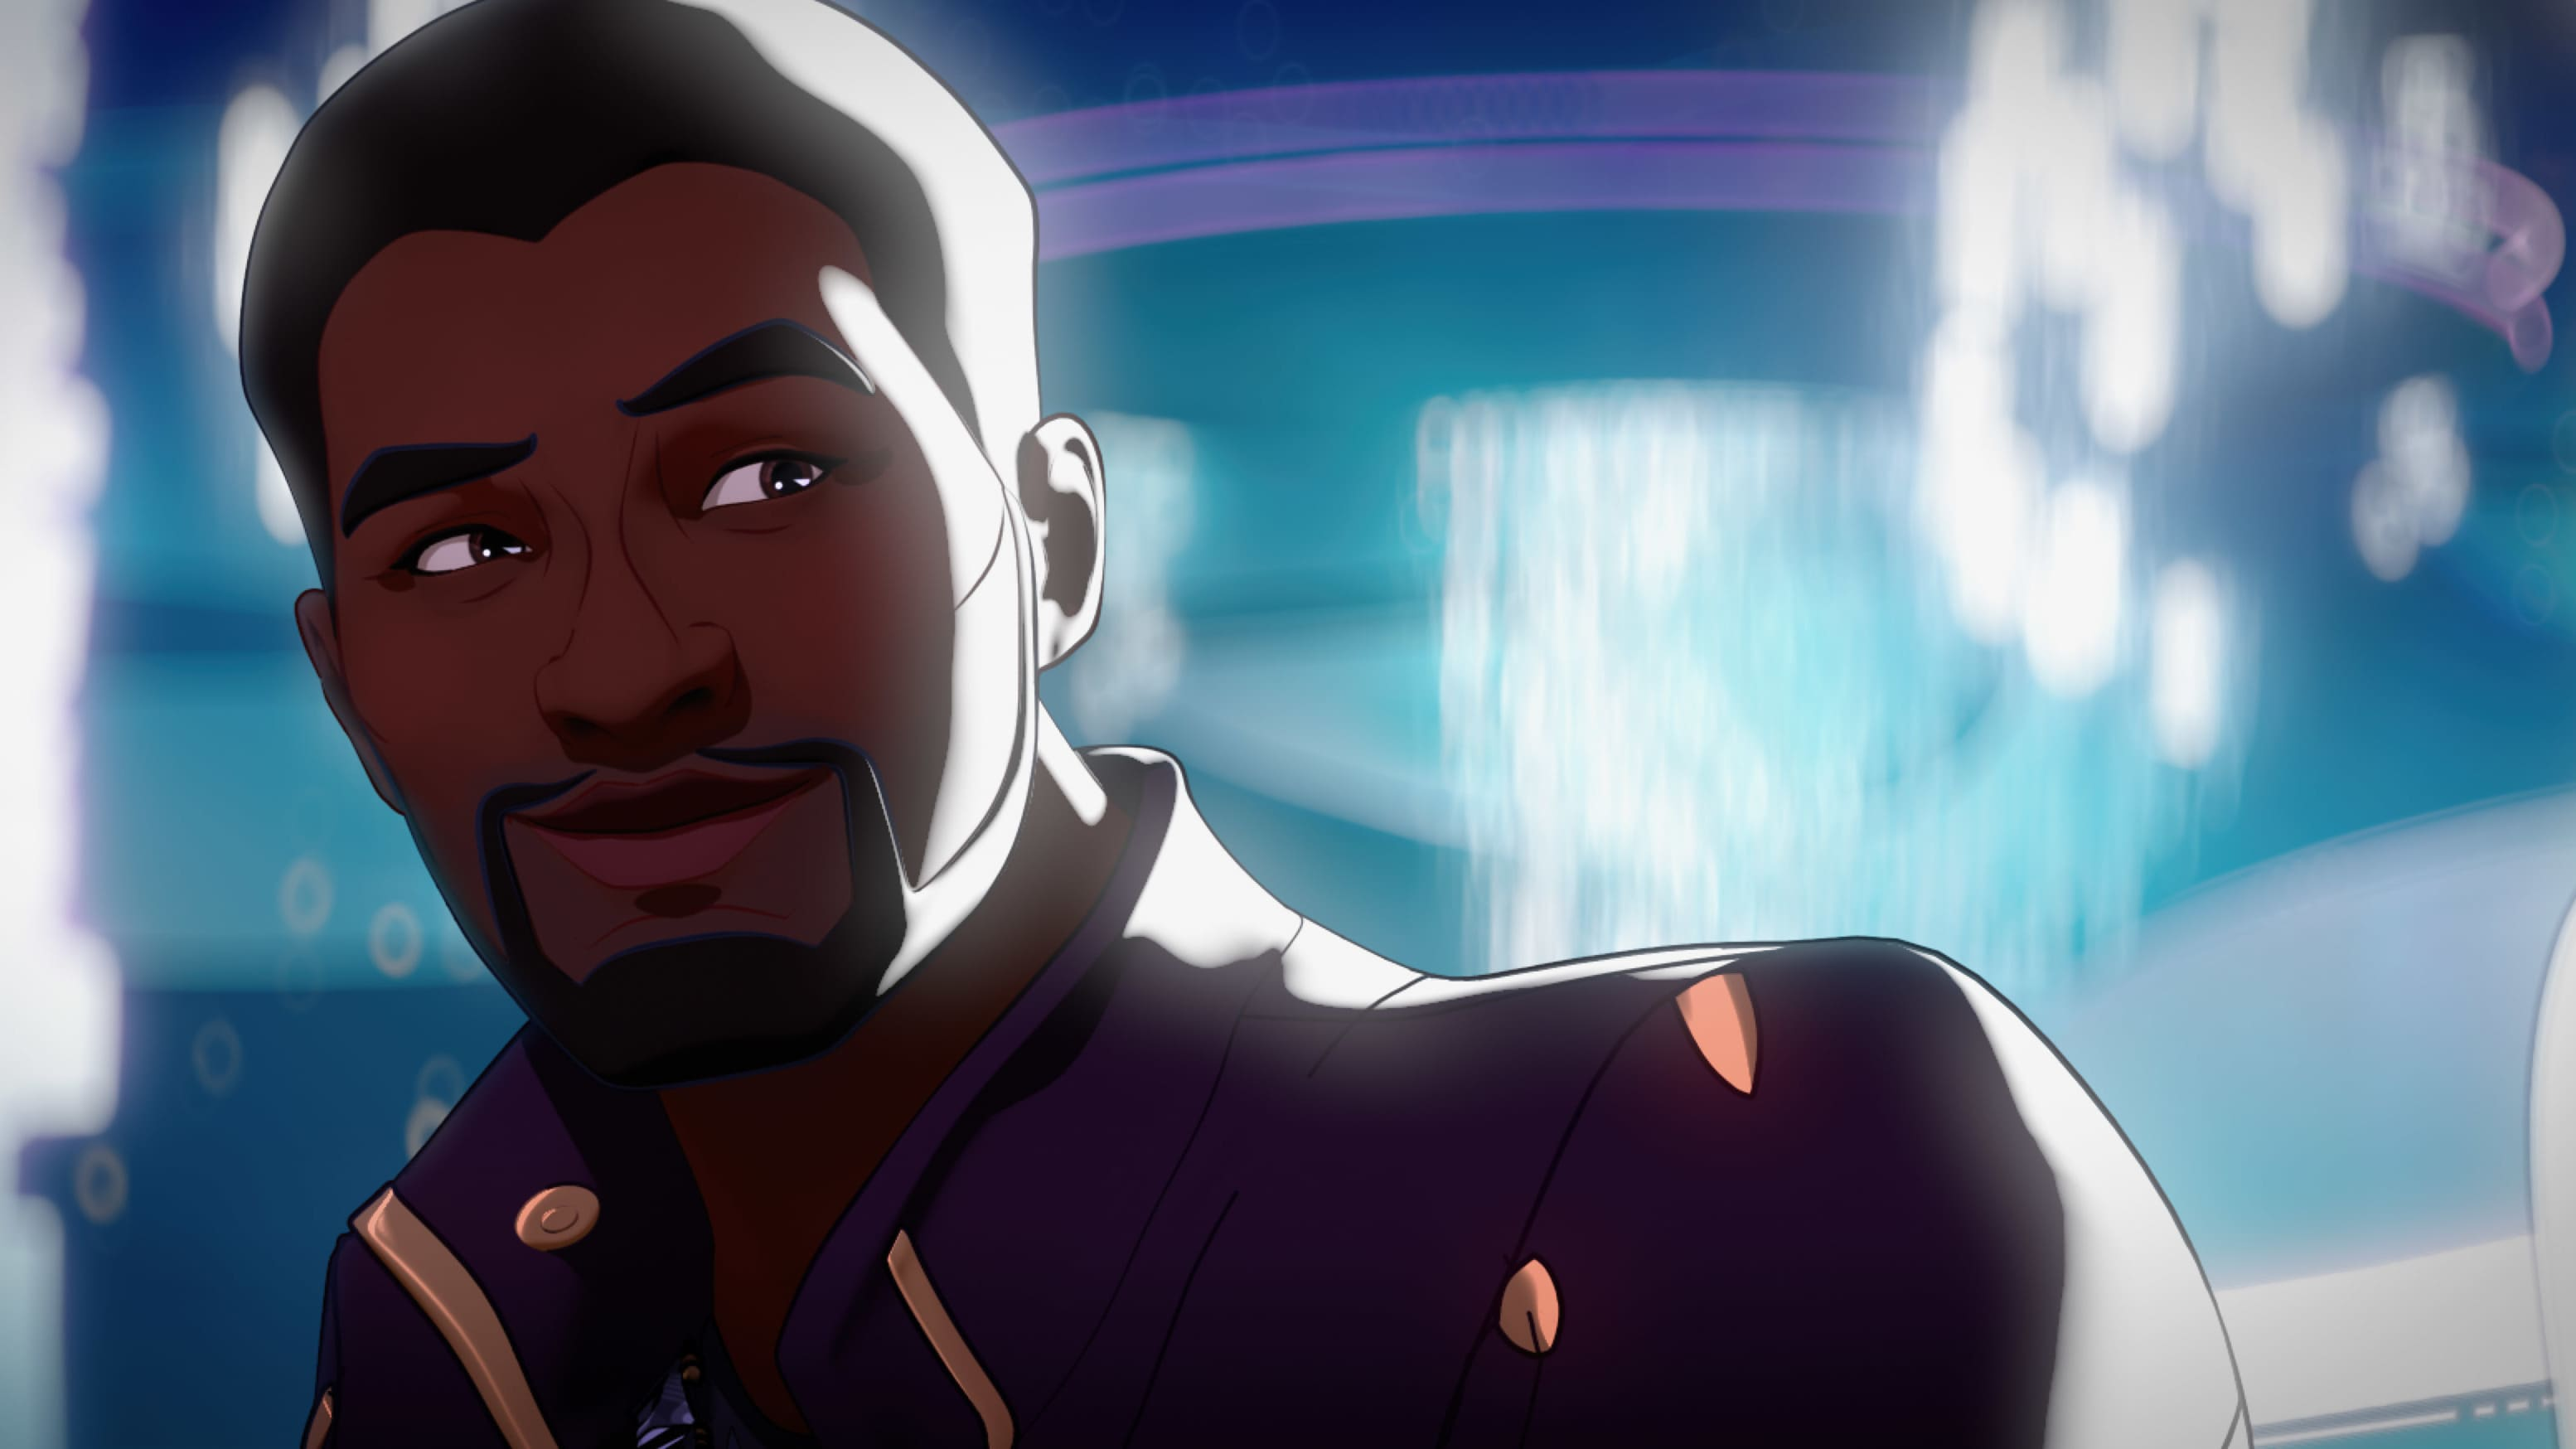 T'Challa/Star-Lord in Marvel Studios' WHAT IF…? exclusively on Disney+. ©Marvel Studios 2021. All Rights Reserved.